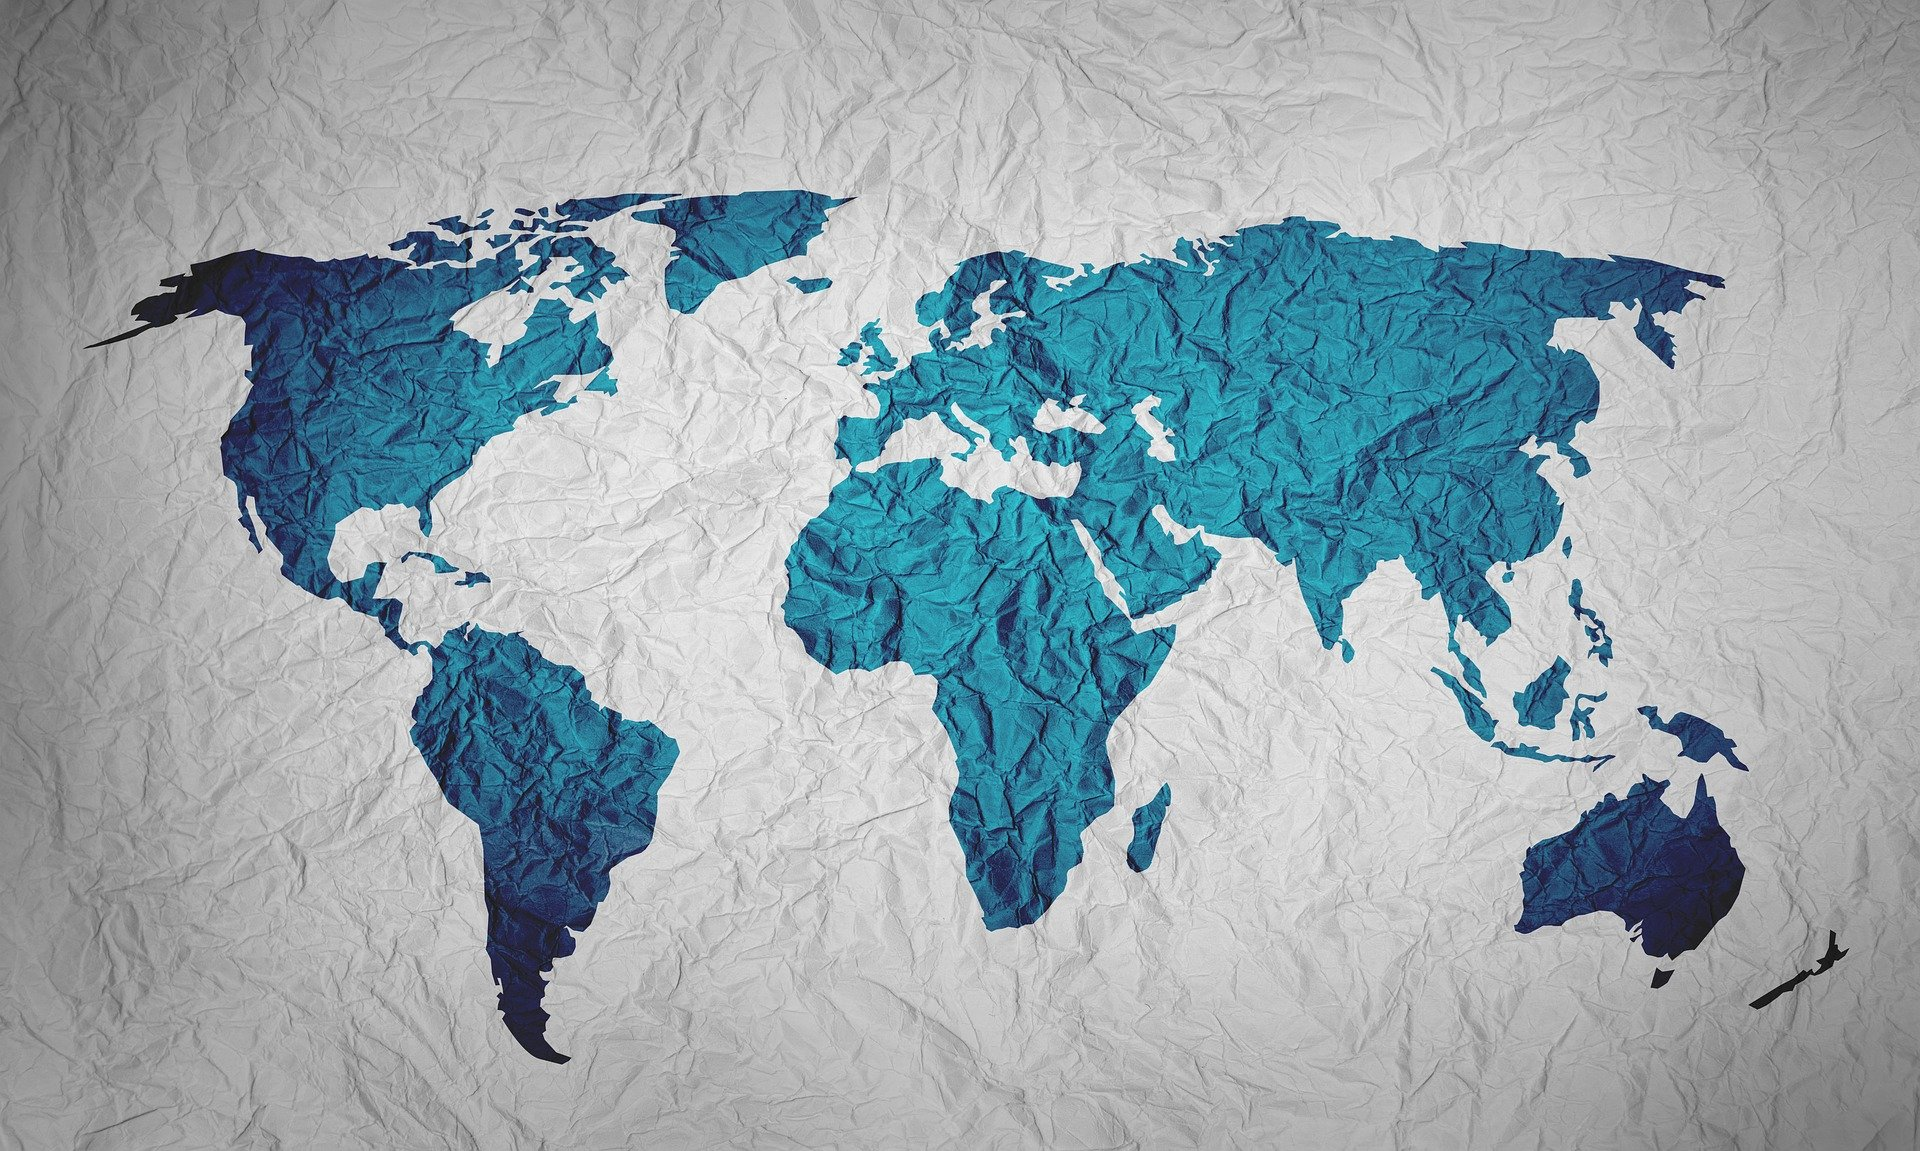 World map showing BCD M&E regions | Global agency, BCD Meetings & Events